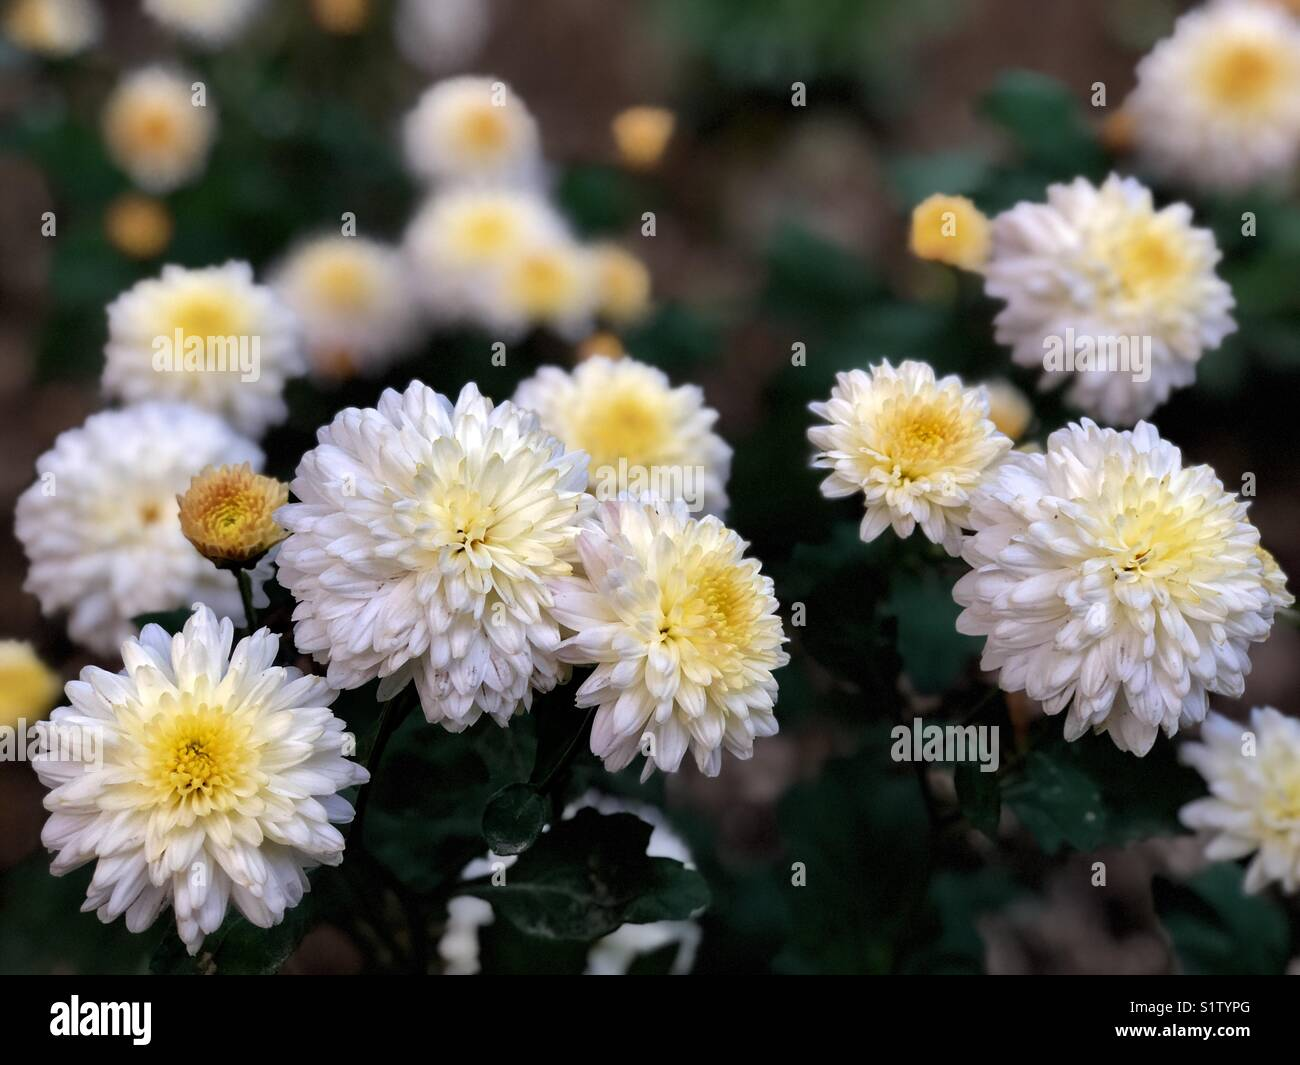 Hybrid White Marigold Flowers At National Zoological Parknew Delhi